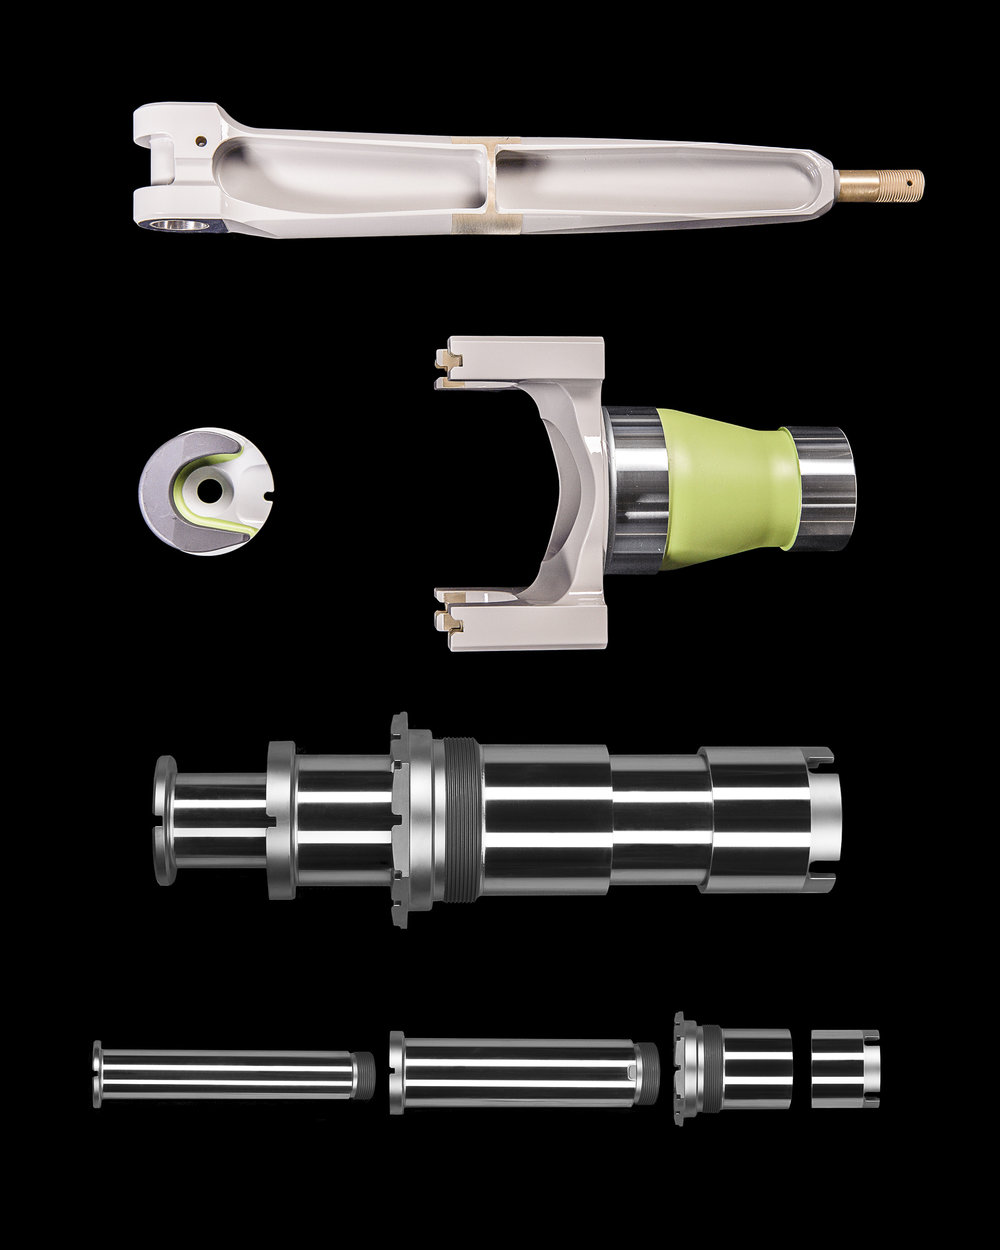 Chrome Plated Pins, Sleeves, Spindles, and Gimbals